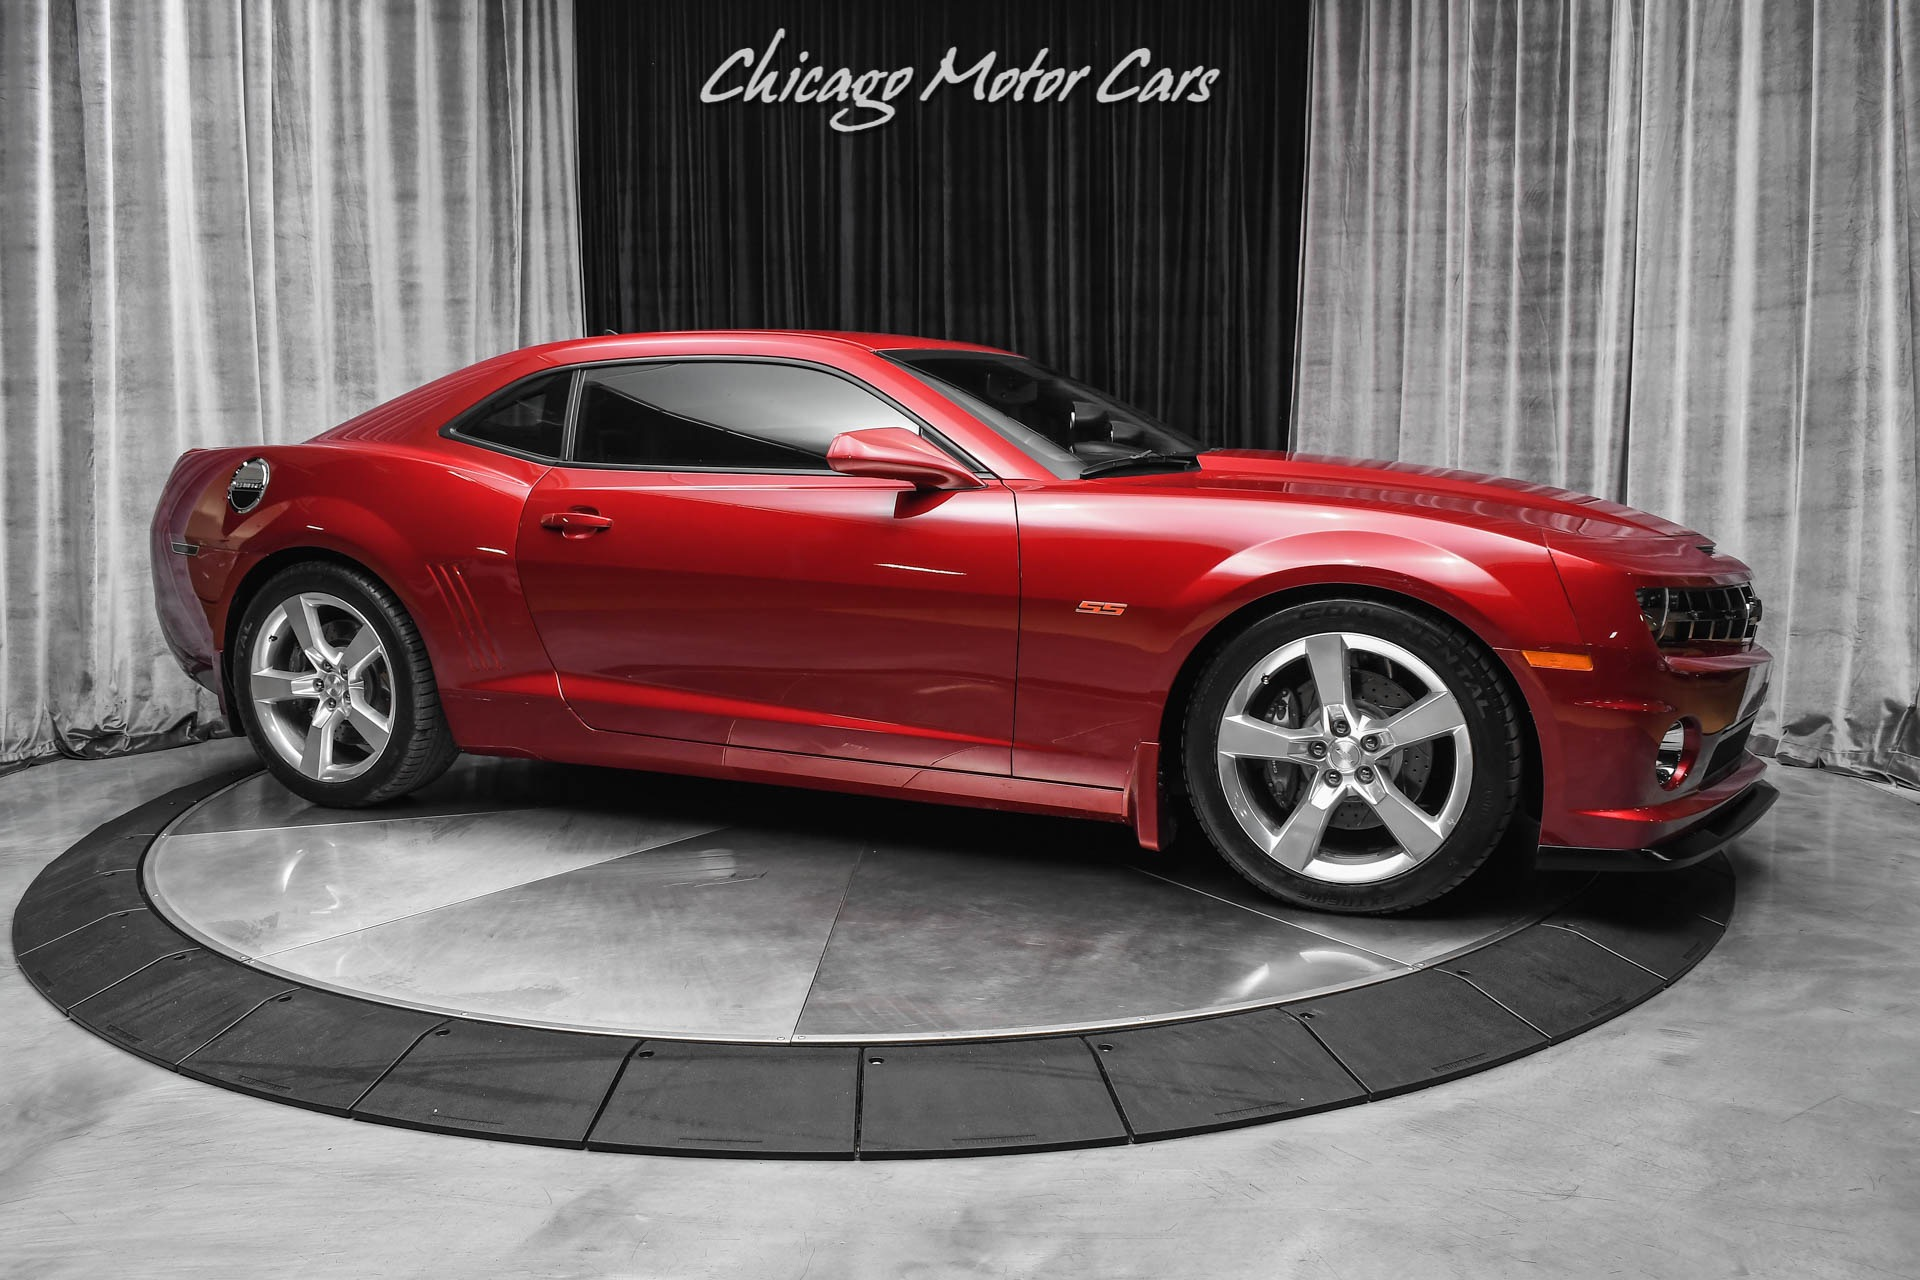 Used-2010-Chevrolet-Camaro-SS-RS-PACKAGE-PROCHARGER-6-SPEED-MANUAL-SUPER-LOW-MILES